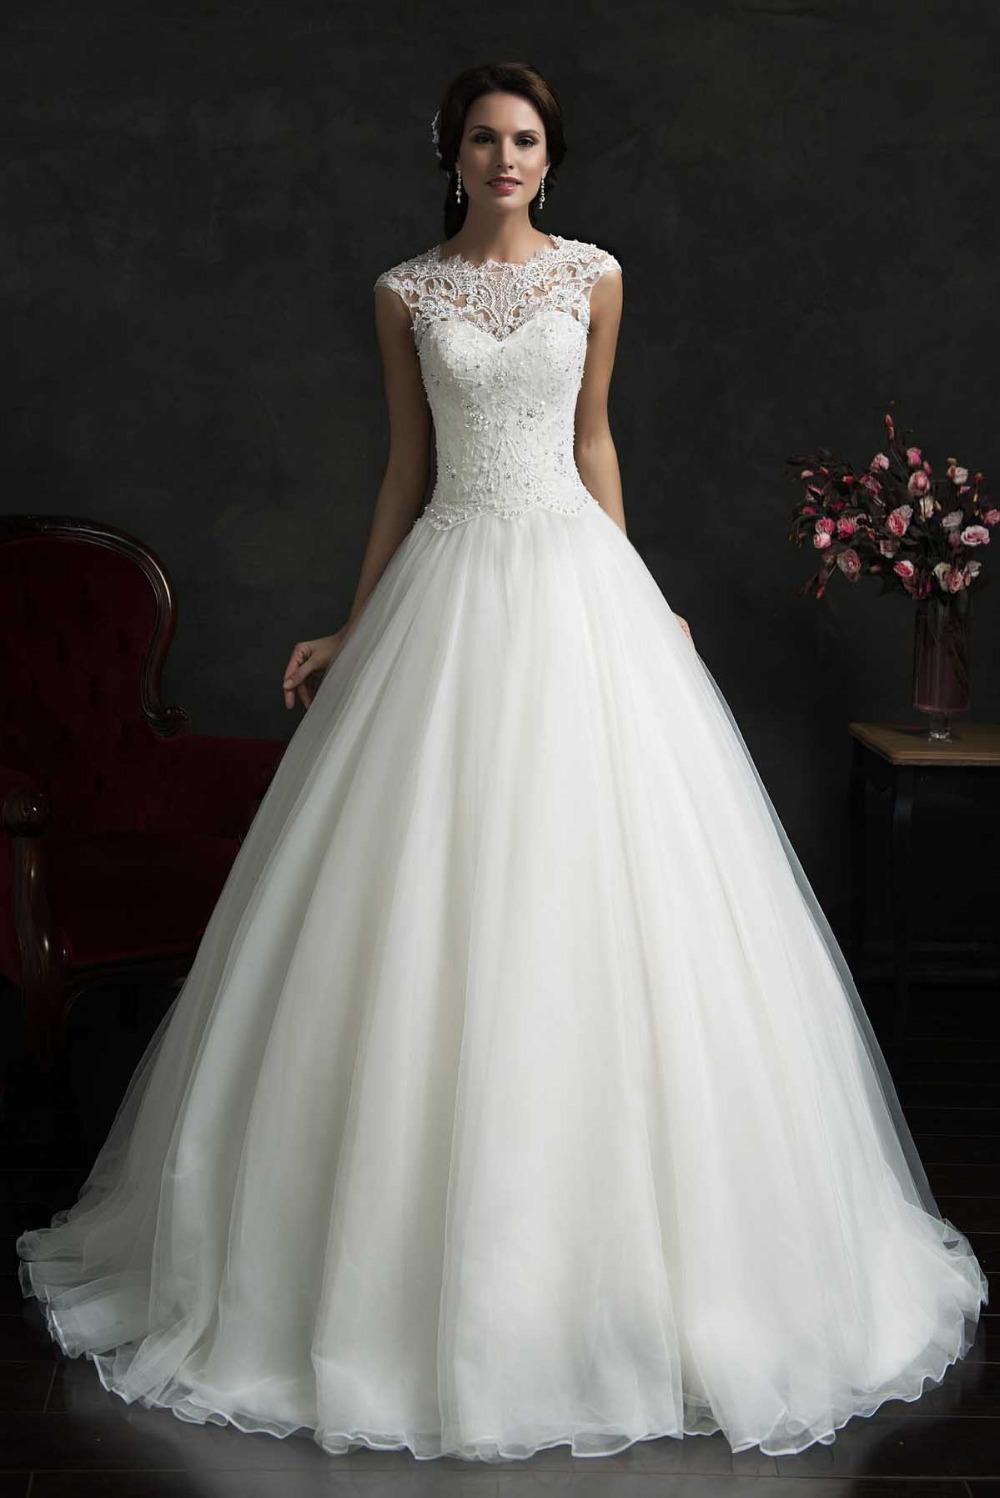 2018 HOt New Vintage High Neck Long Organza Ball Gown Wedding Dress ...